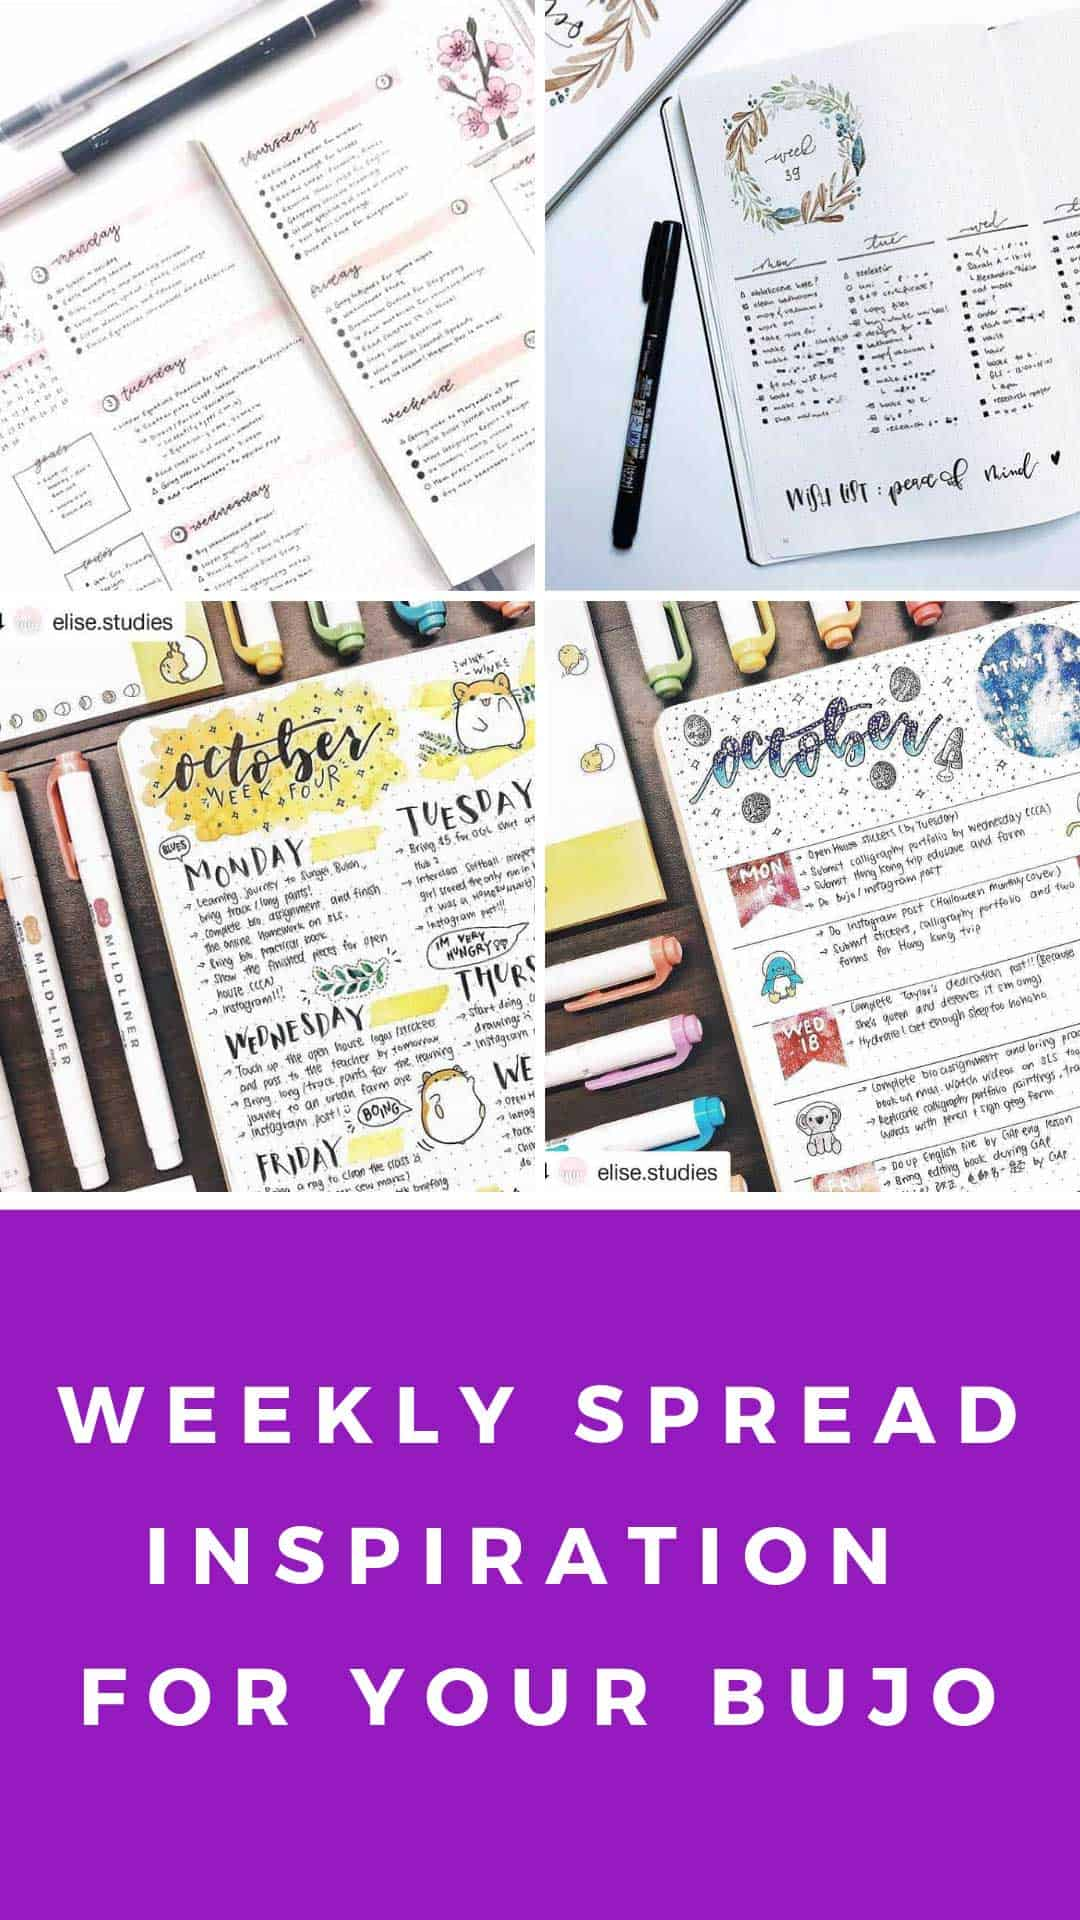 So many great bullet journal weekly spread ideas to inspire you! #bulletjournal